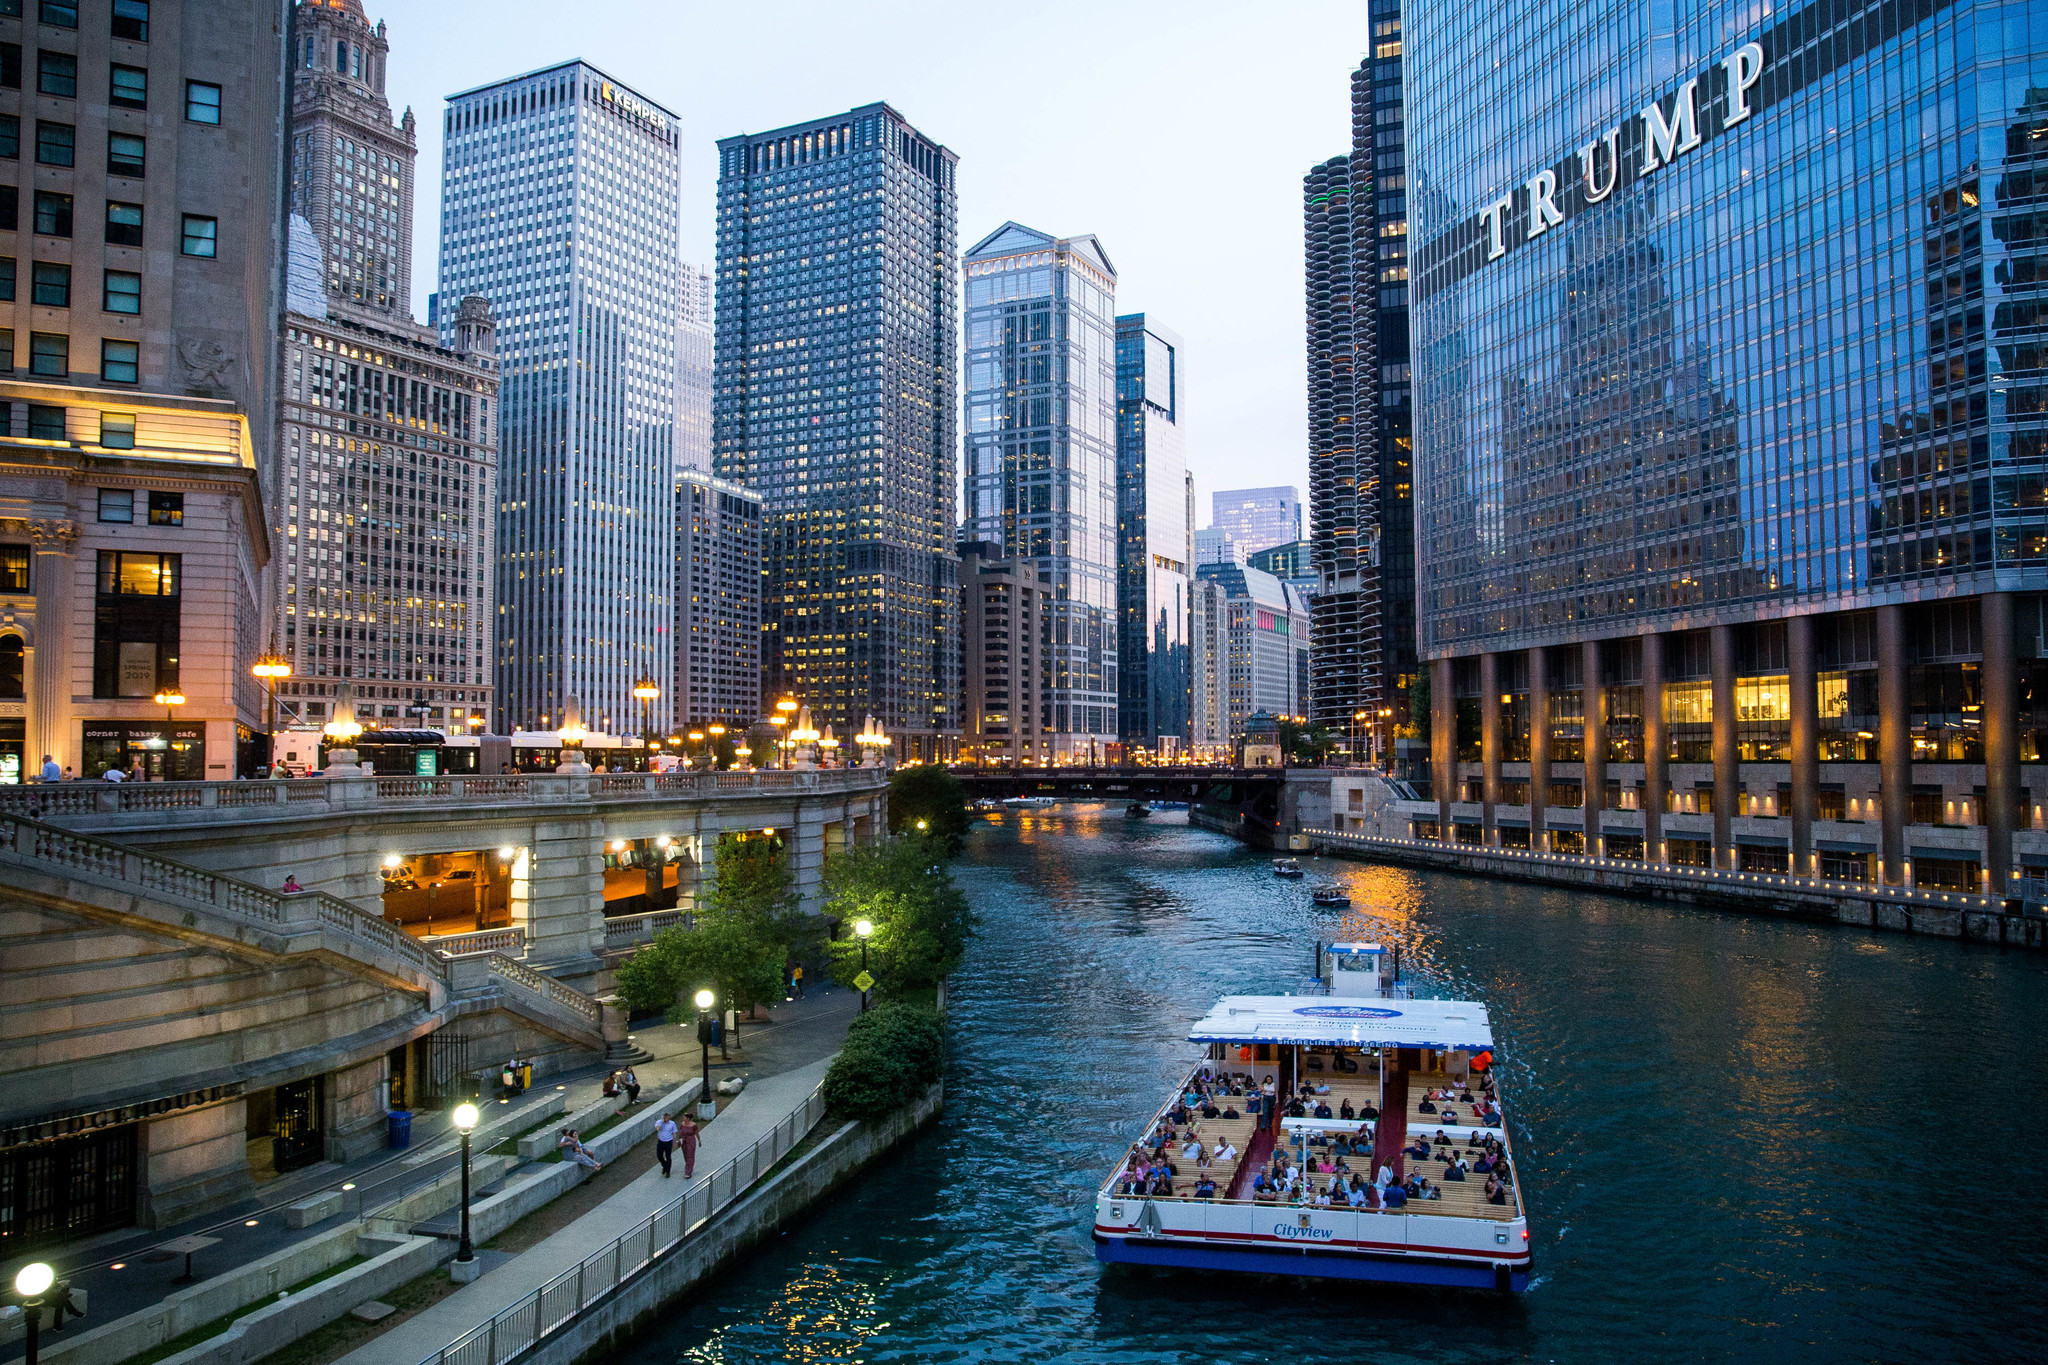 Architecture tours lead the way in bringing visitors to increasingly congested Chicago River